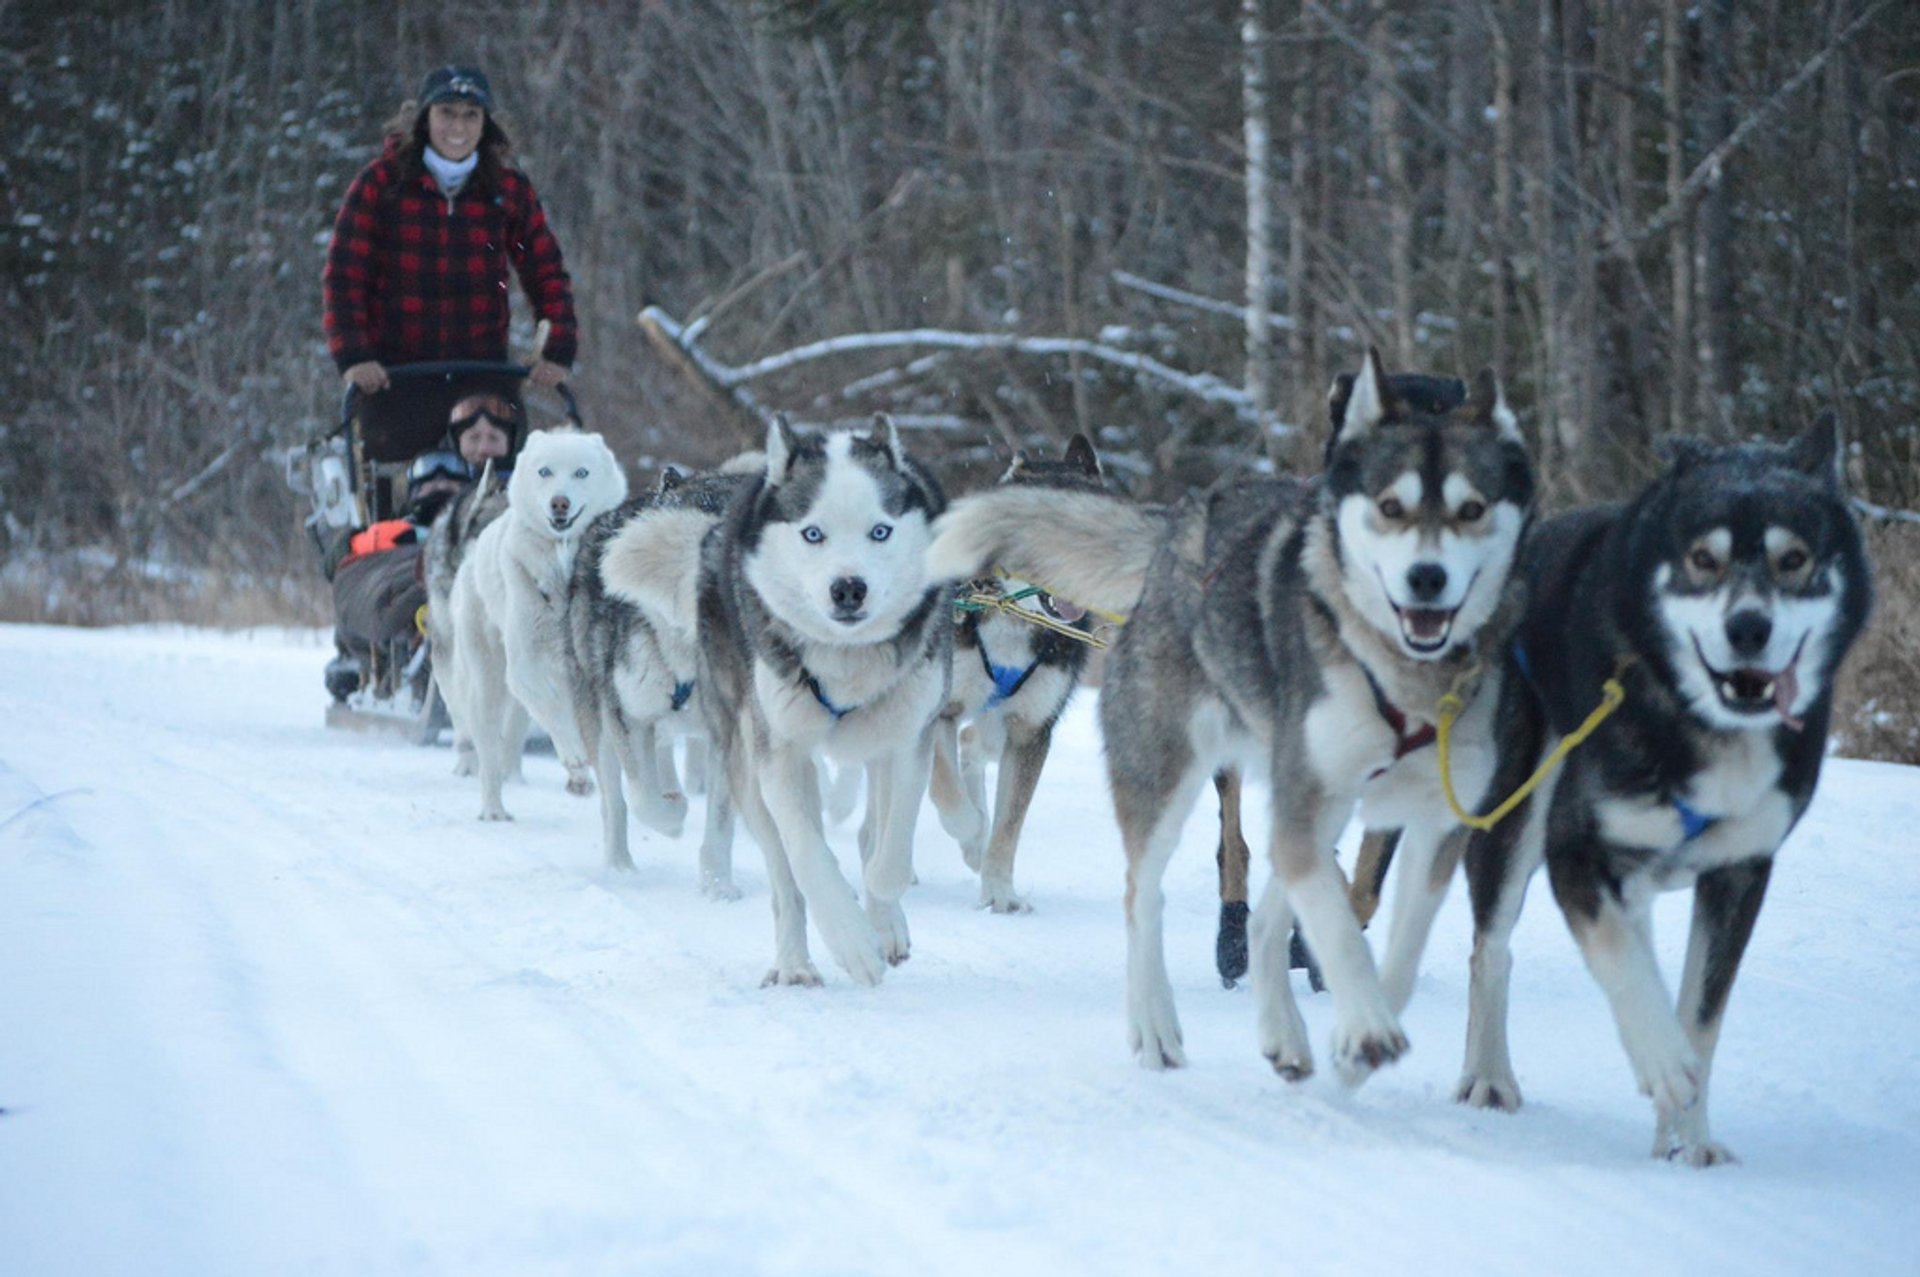 Sled Dog Experience in New Zealand 2020 - Best Time